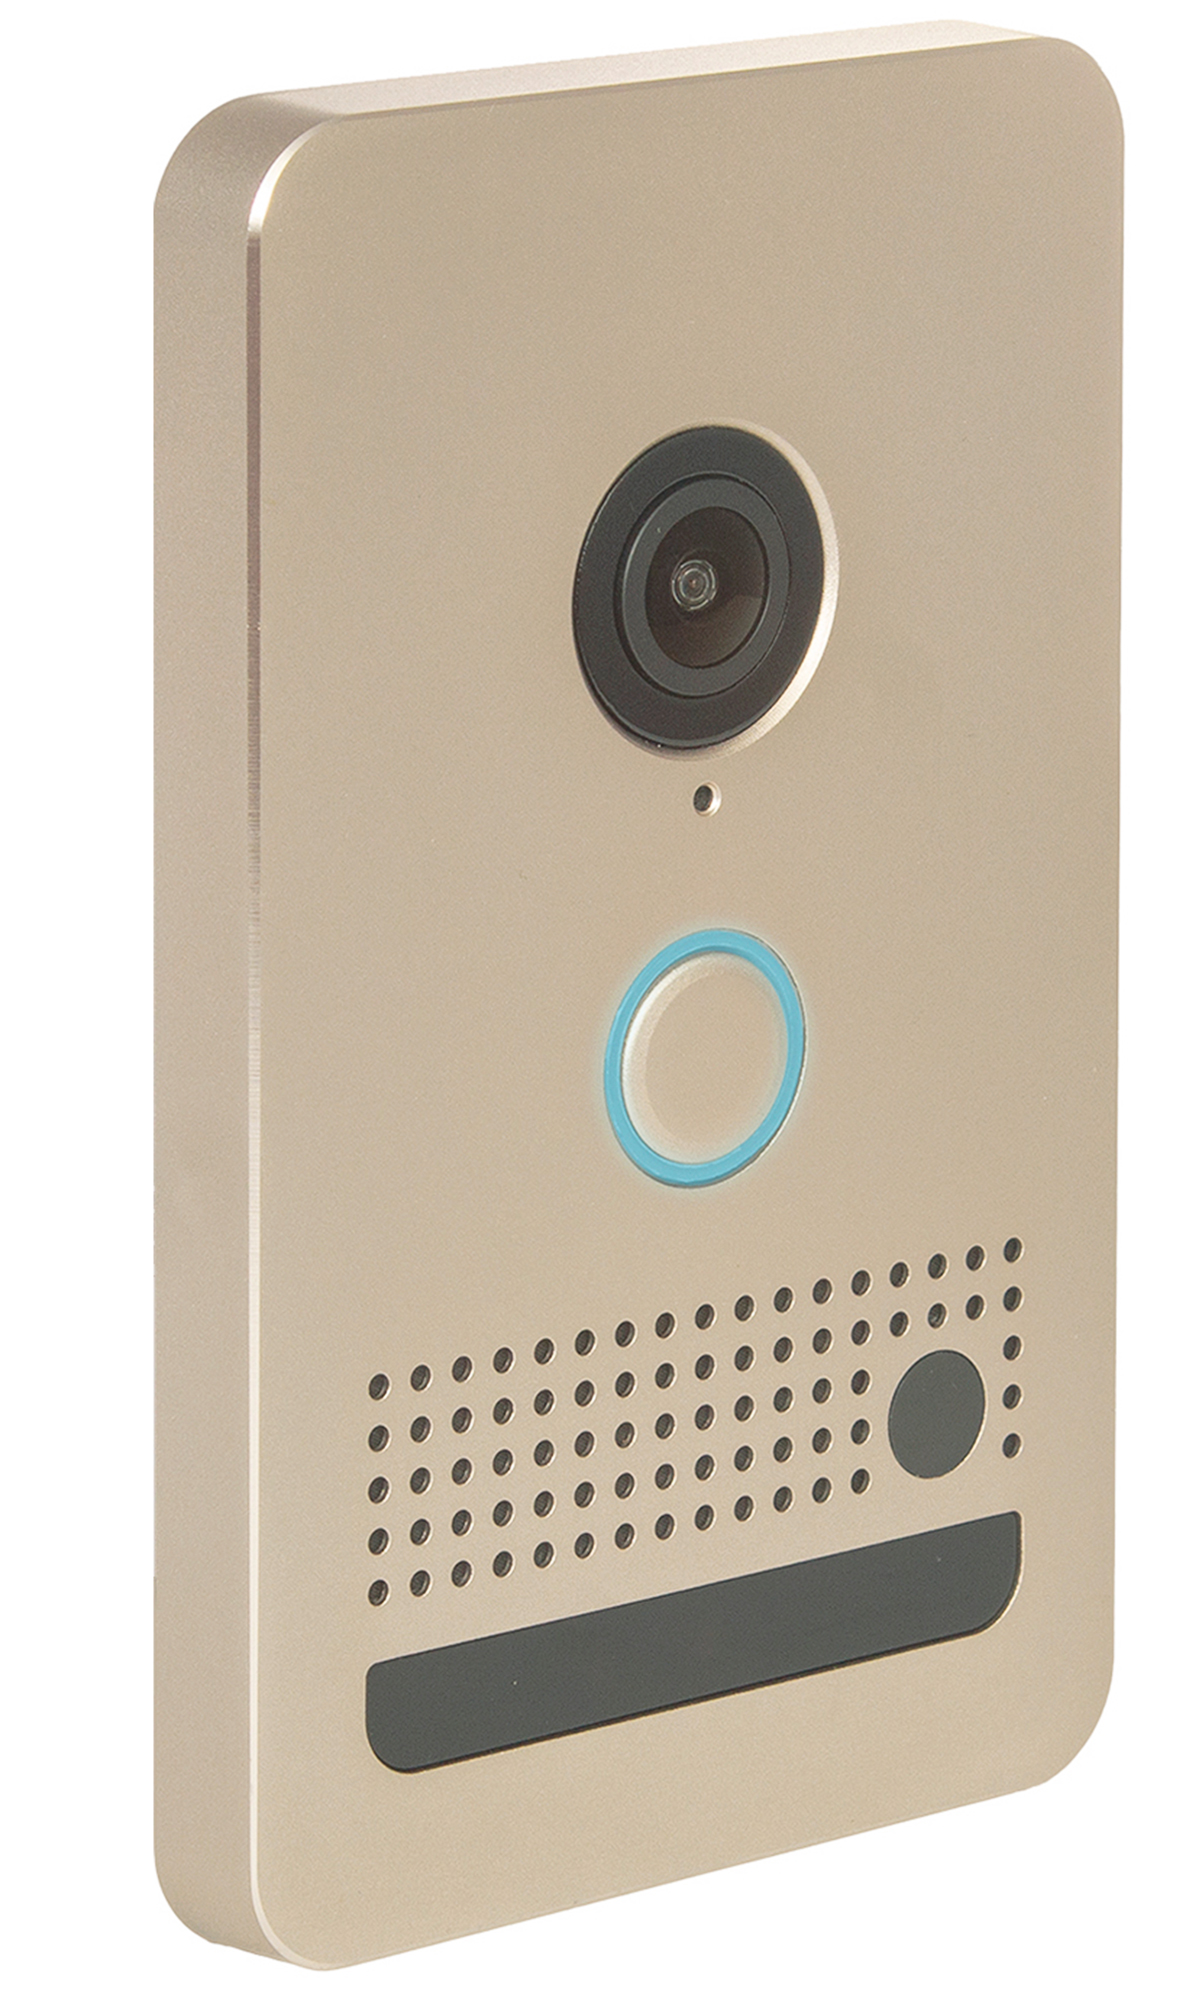 ELAN Video Doorbell